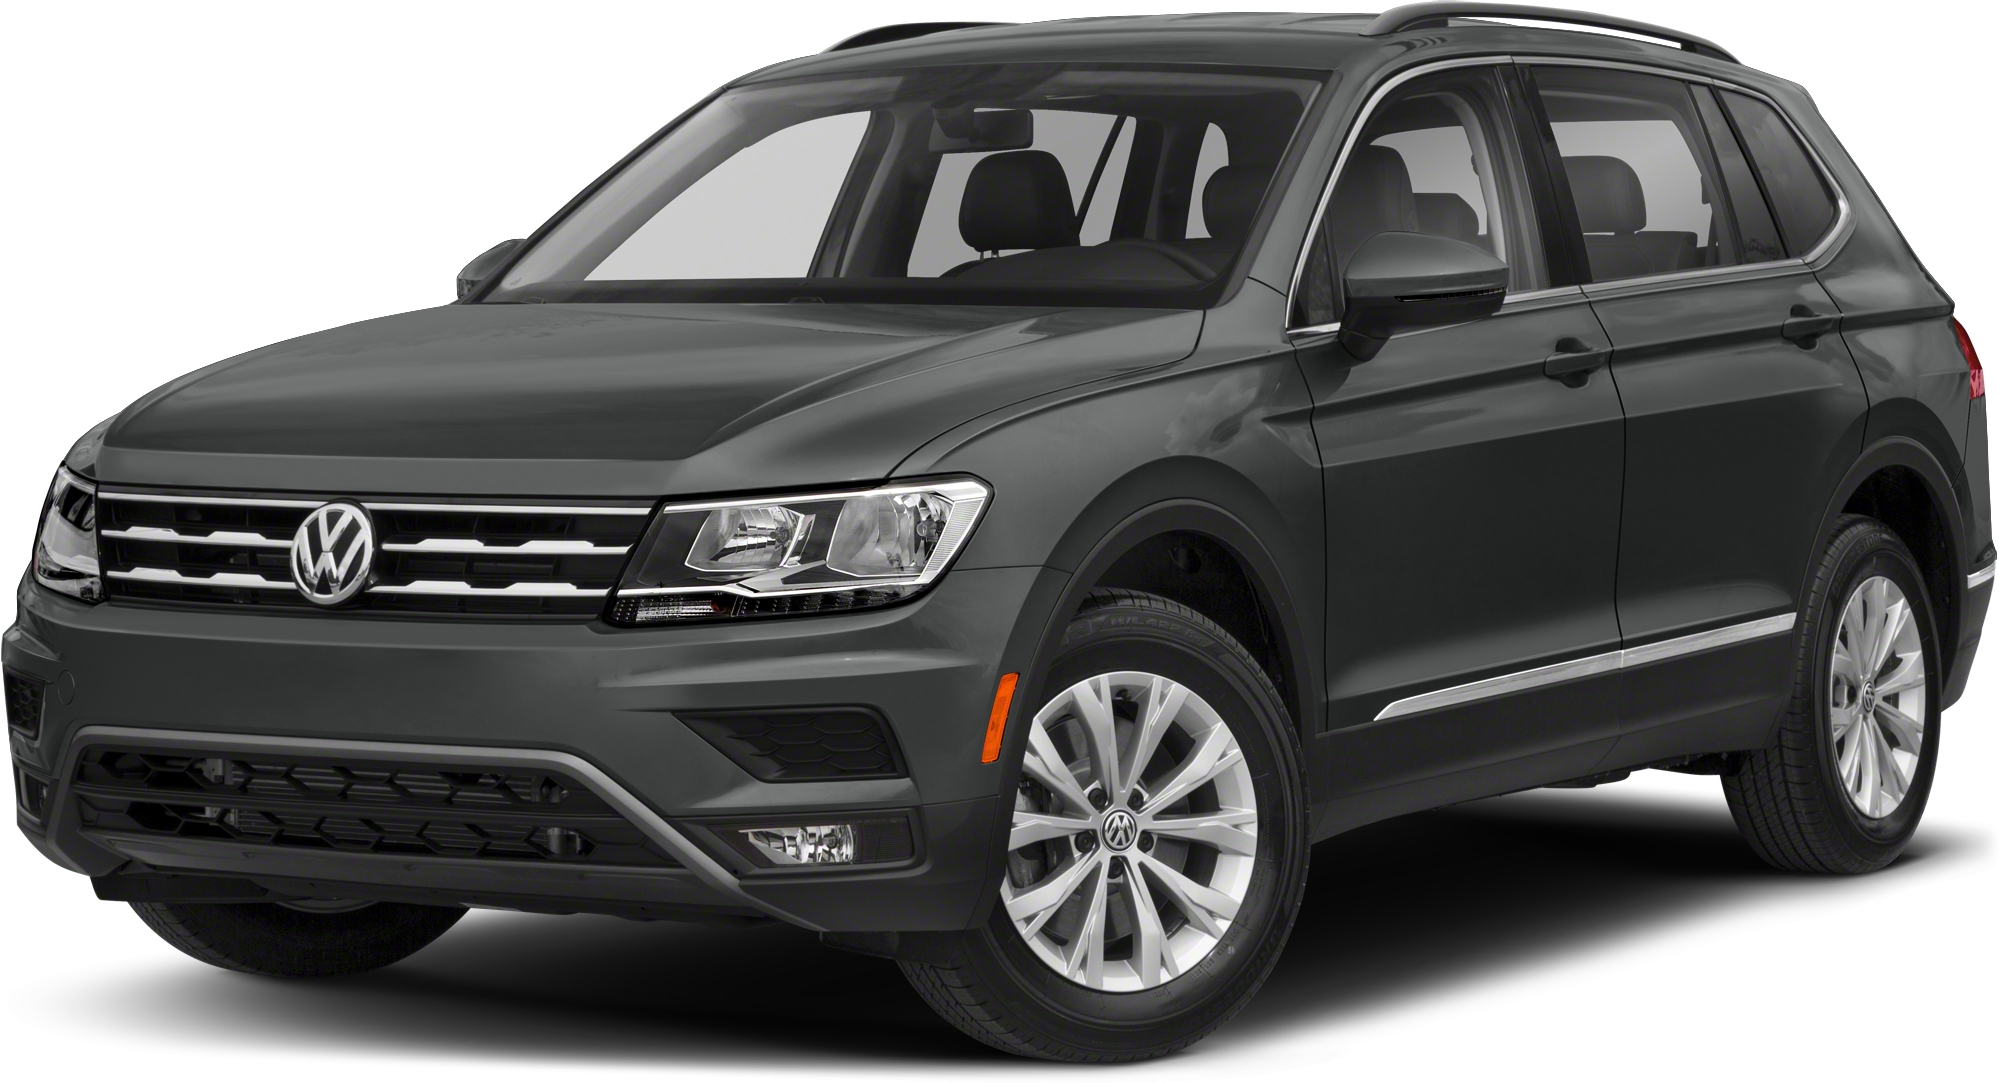 2018 volkswagen tiguan sel brunswick me 21504436. Black Bedroom Furniture Sets. Home Design Ideas